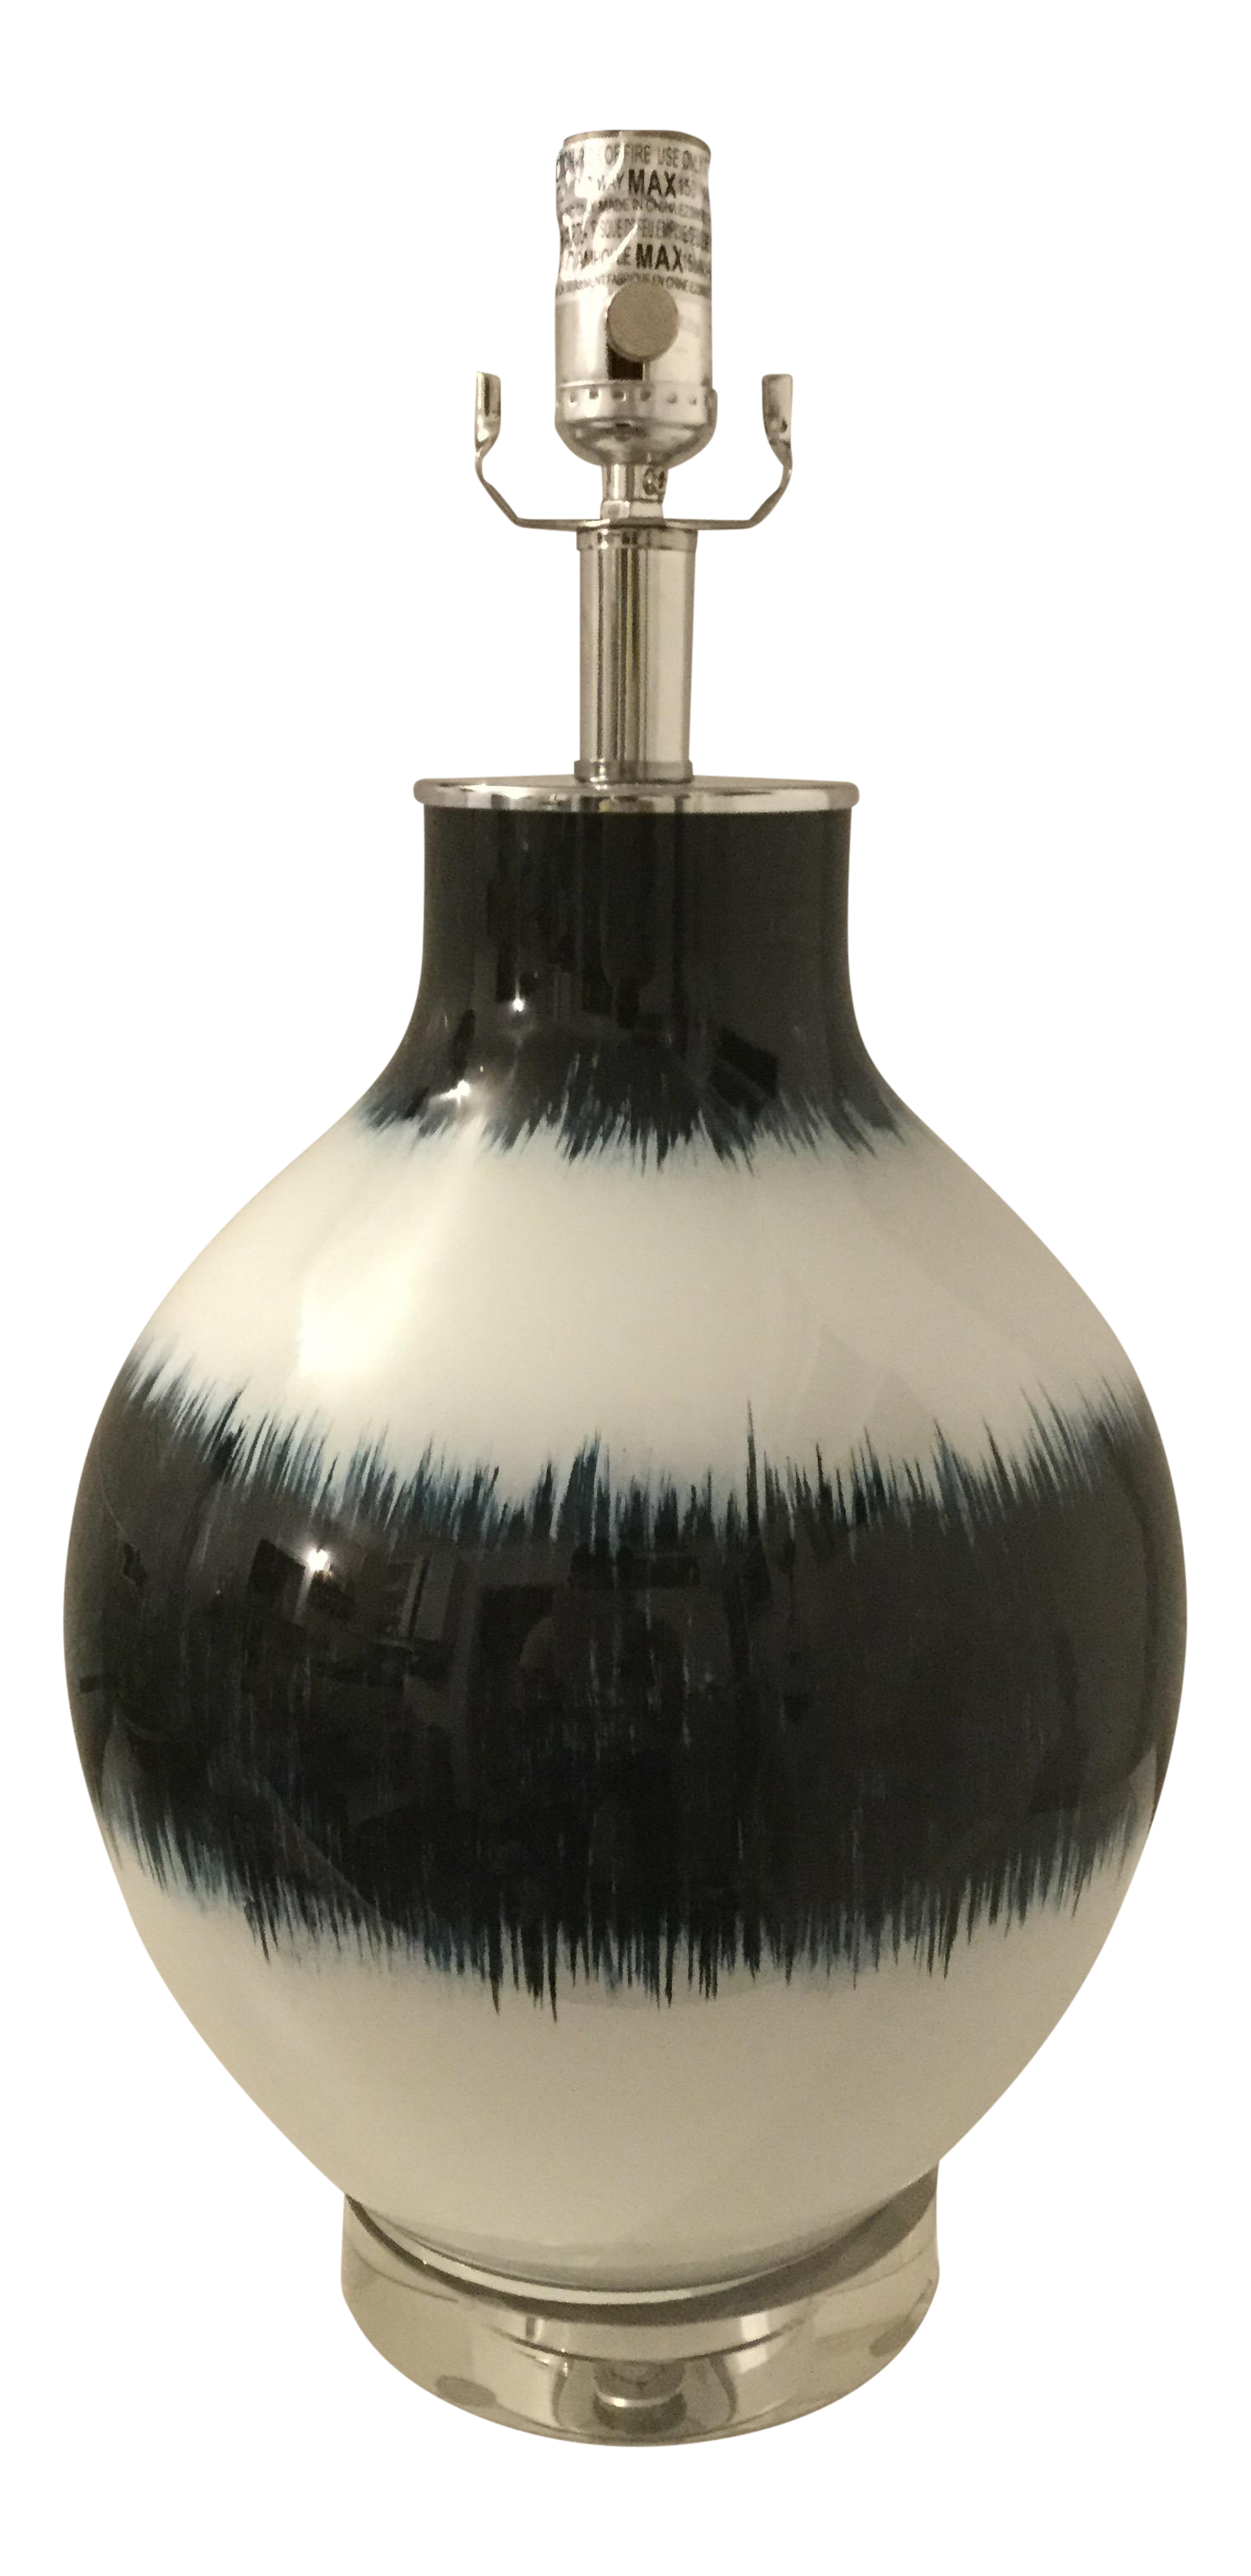 Regina andrew design hand painted indigo glass table lamp for Design table lamp giffy 17 7